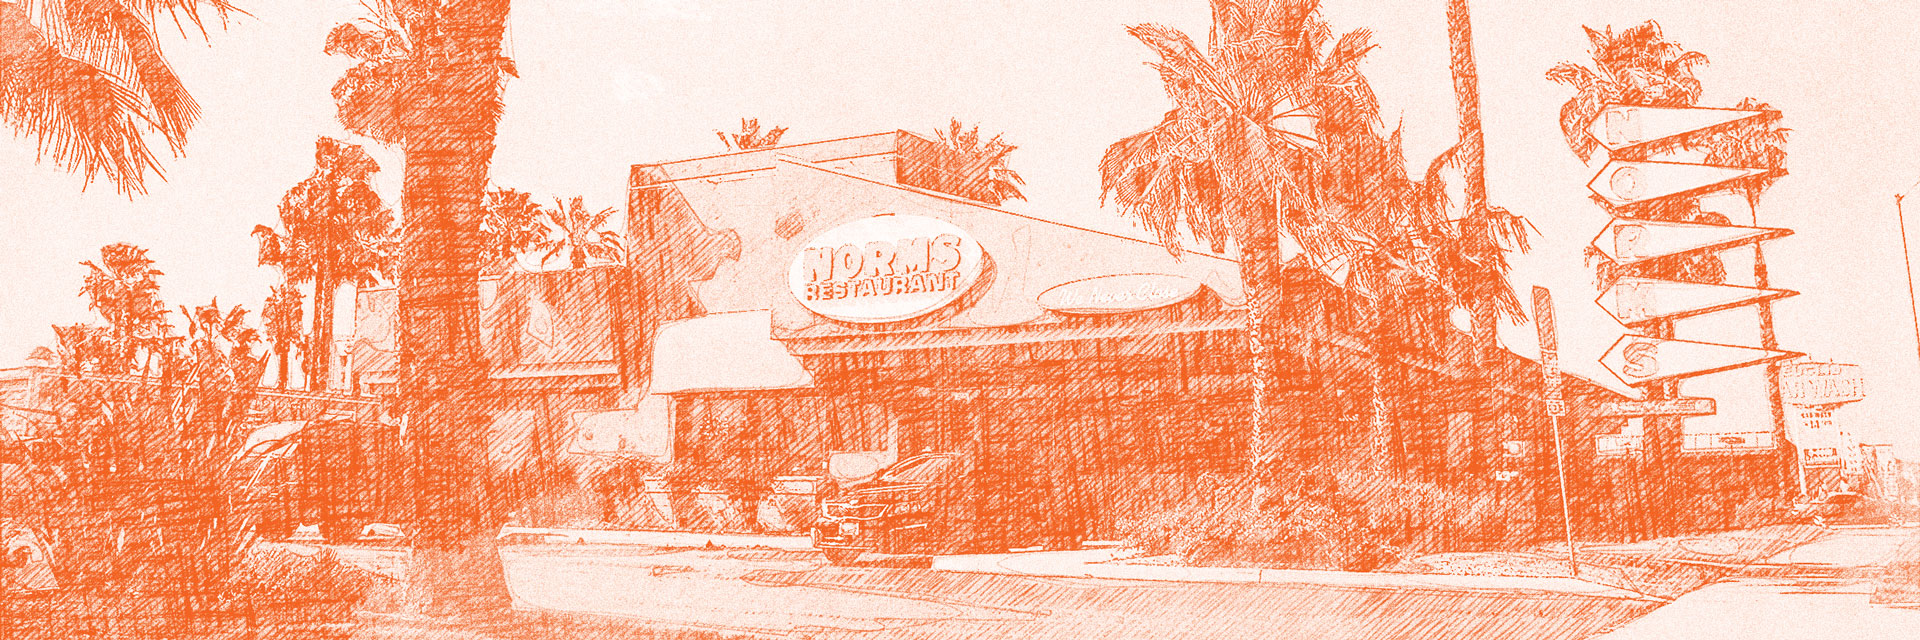 Sketch of Norms restaurant